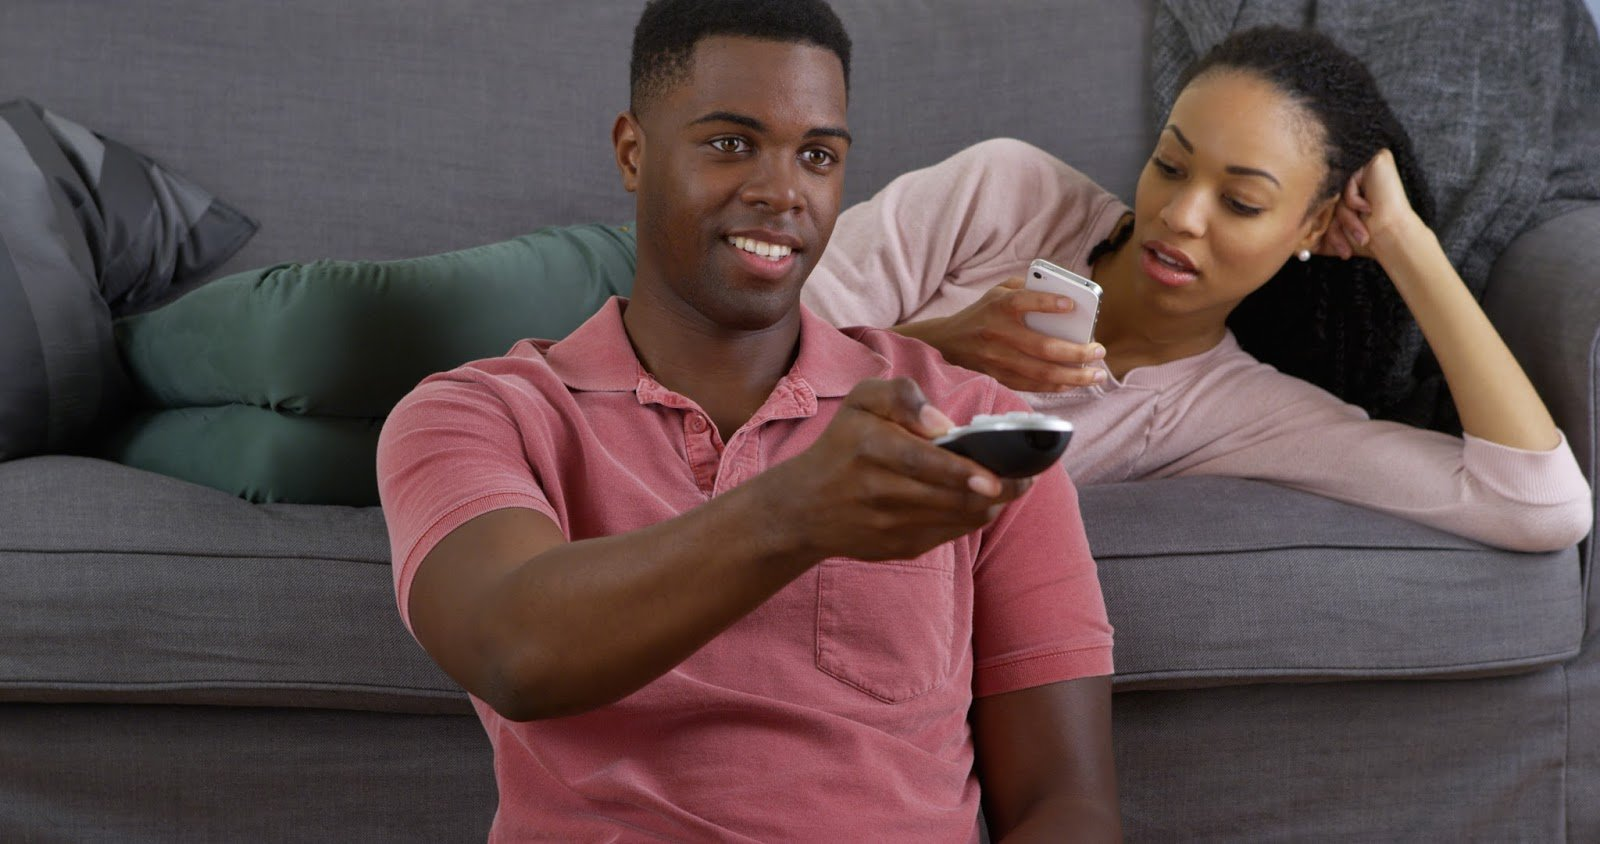 Men & Women Weigh In On The Influence Of Social Media On Their Relationships